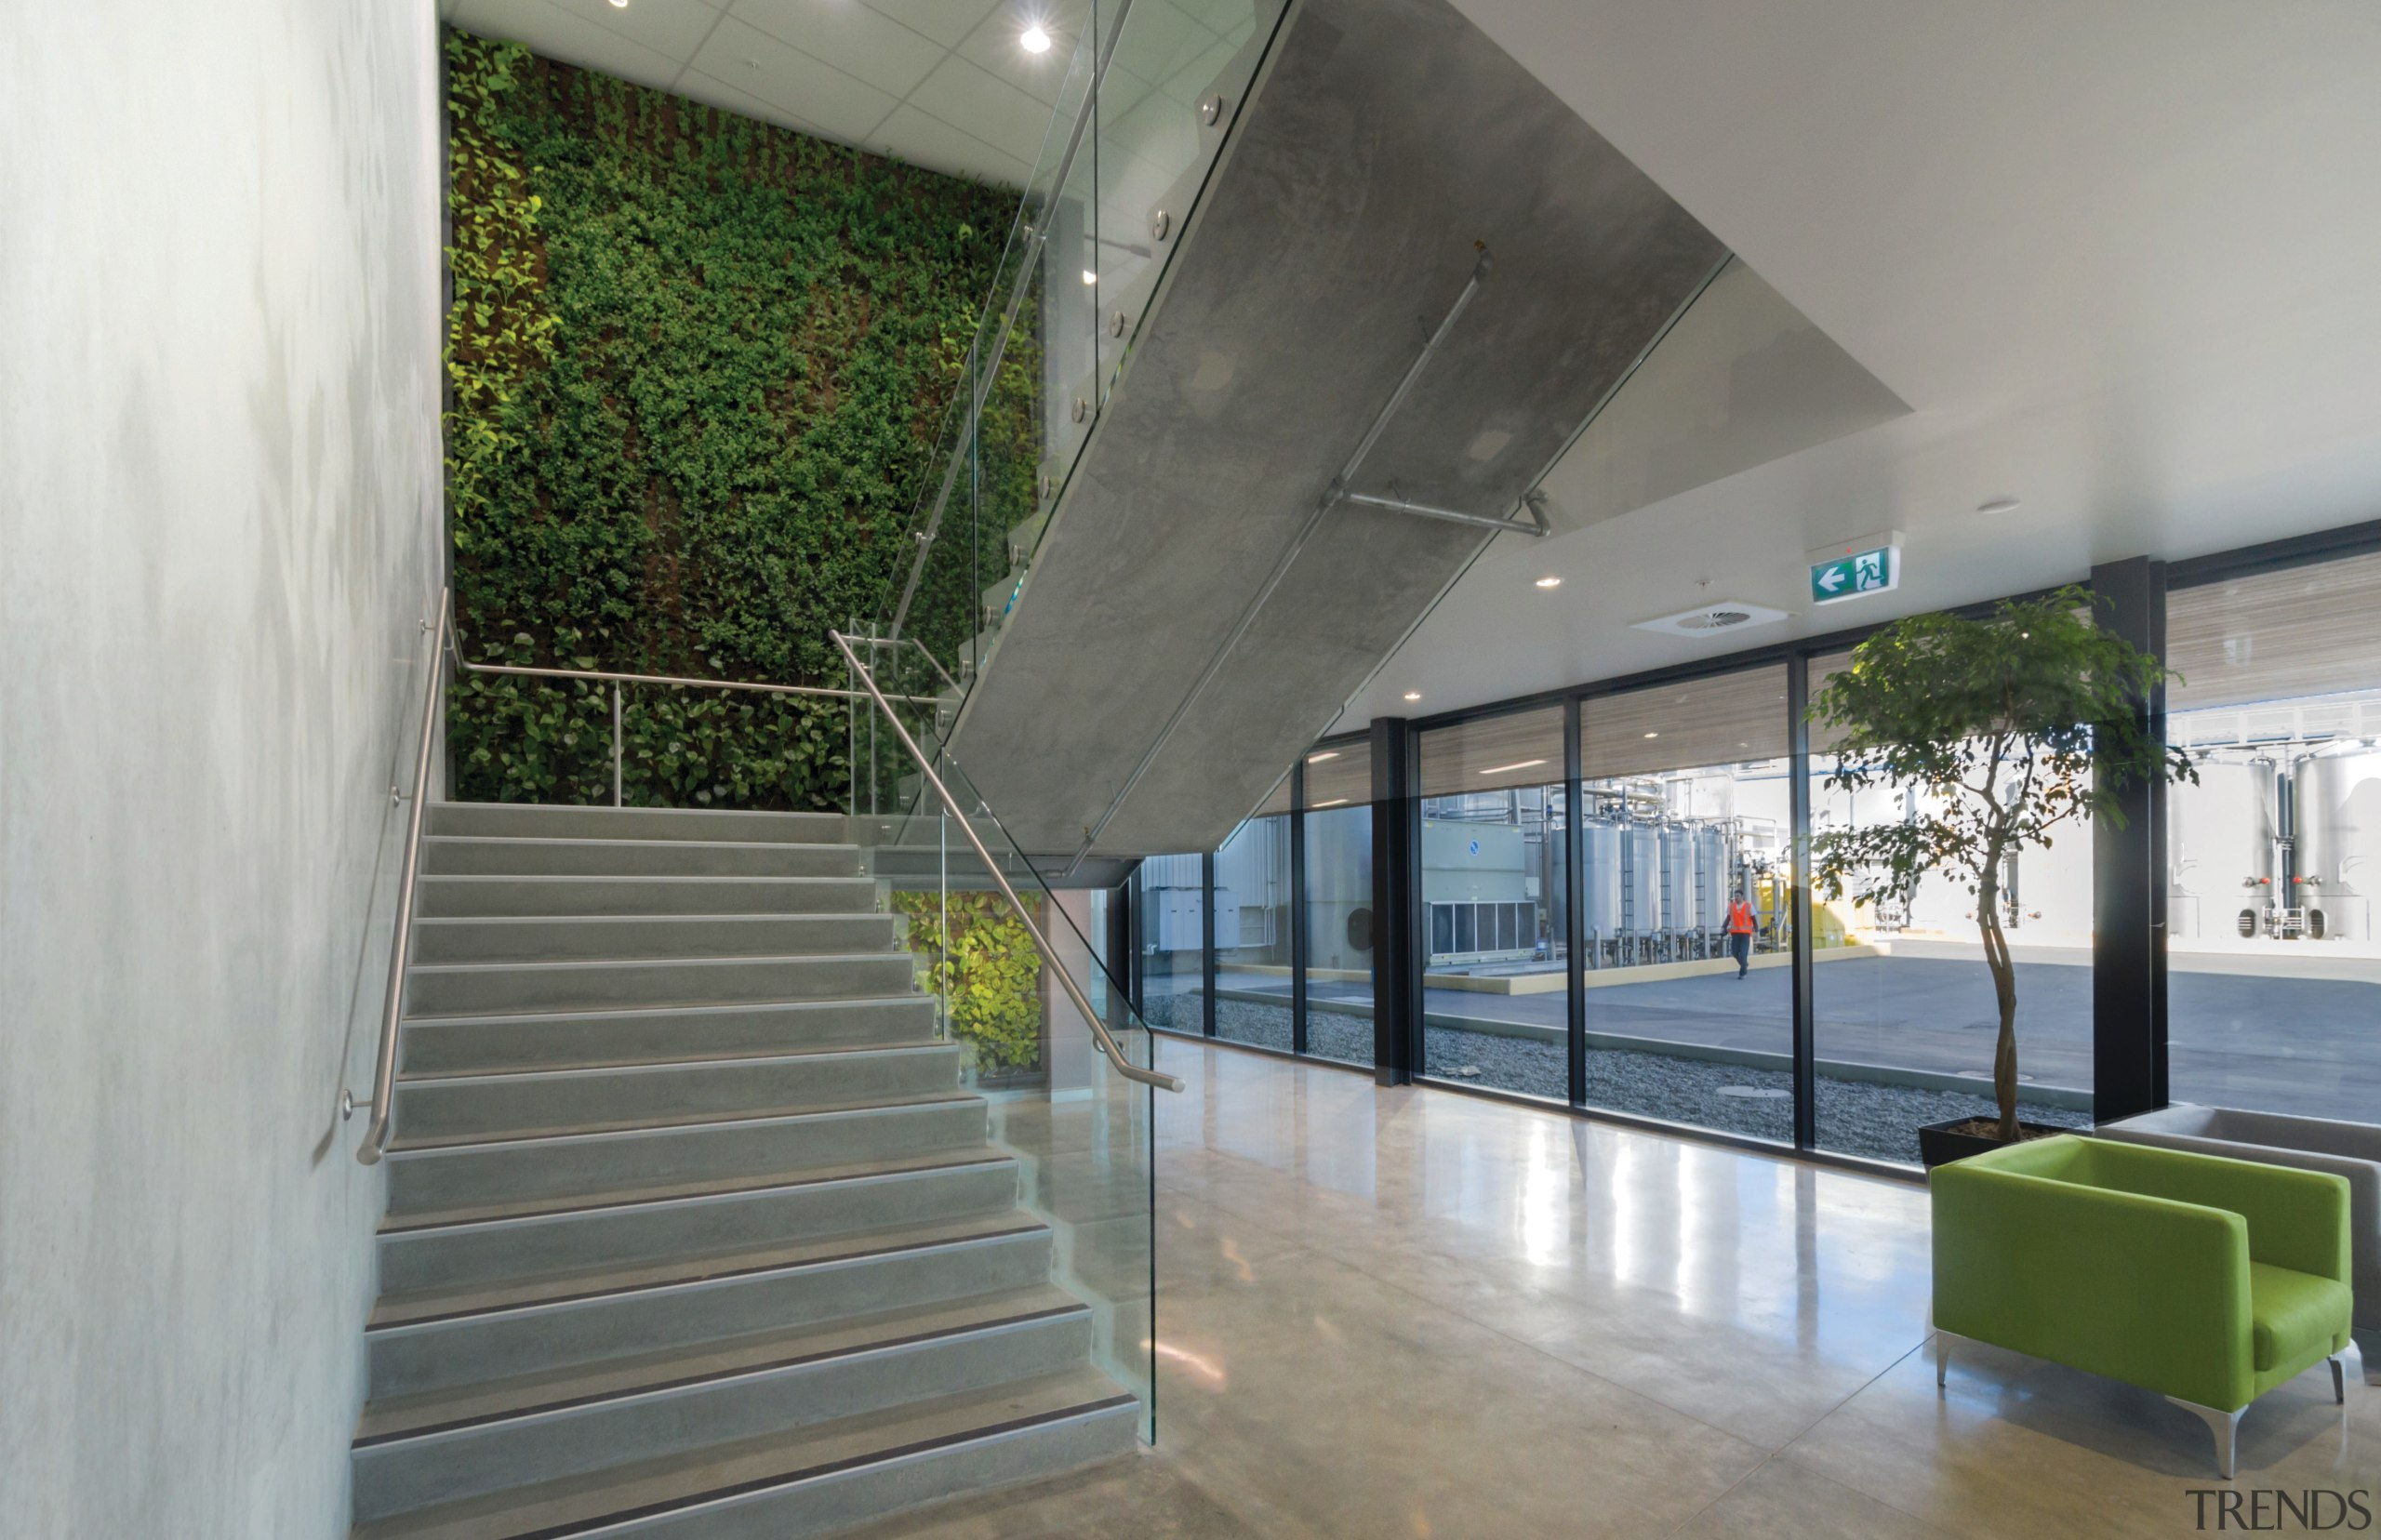 Green and growing  a living wall greets architecture, daylighting, glass, handrail, house, interior design, real estate, structure, window, gray